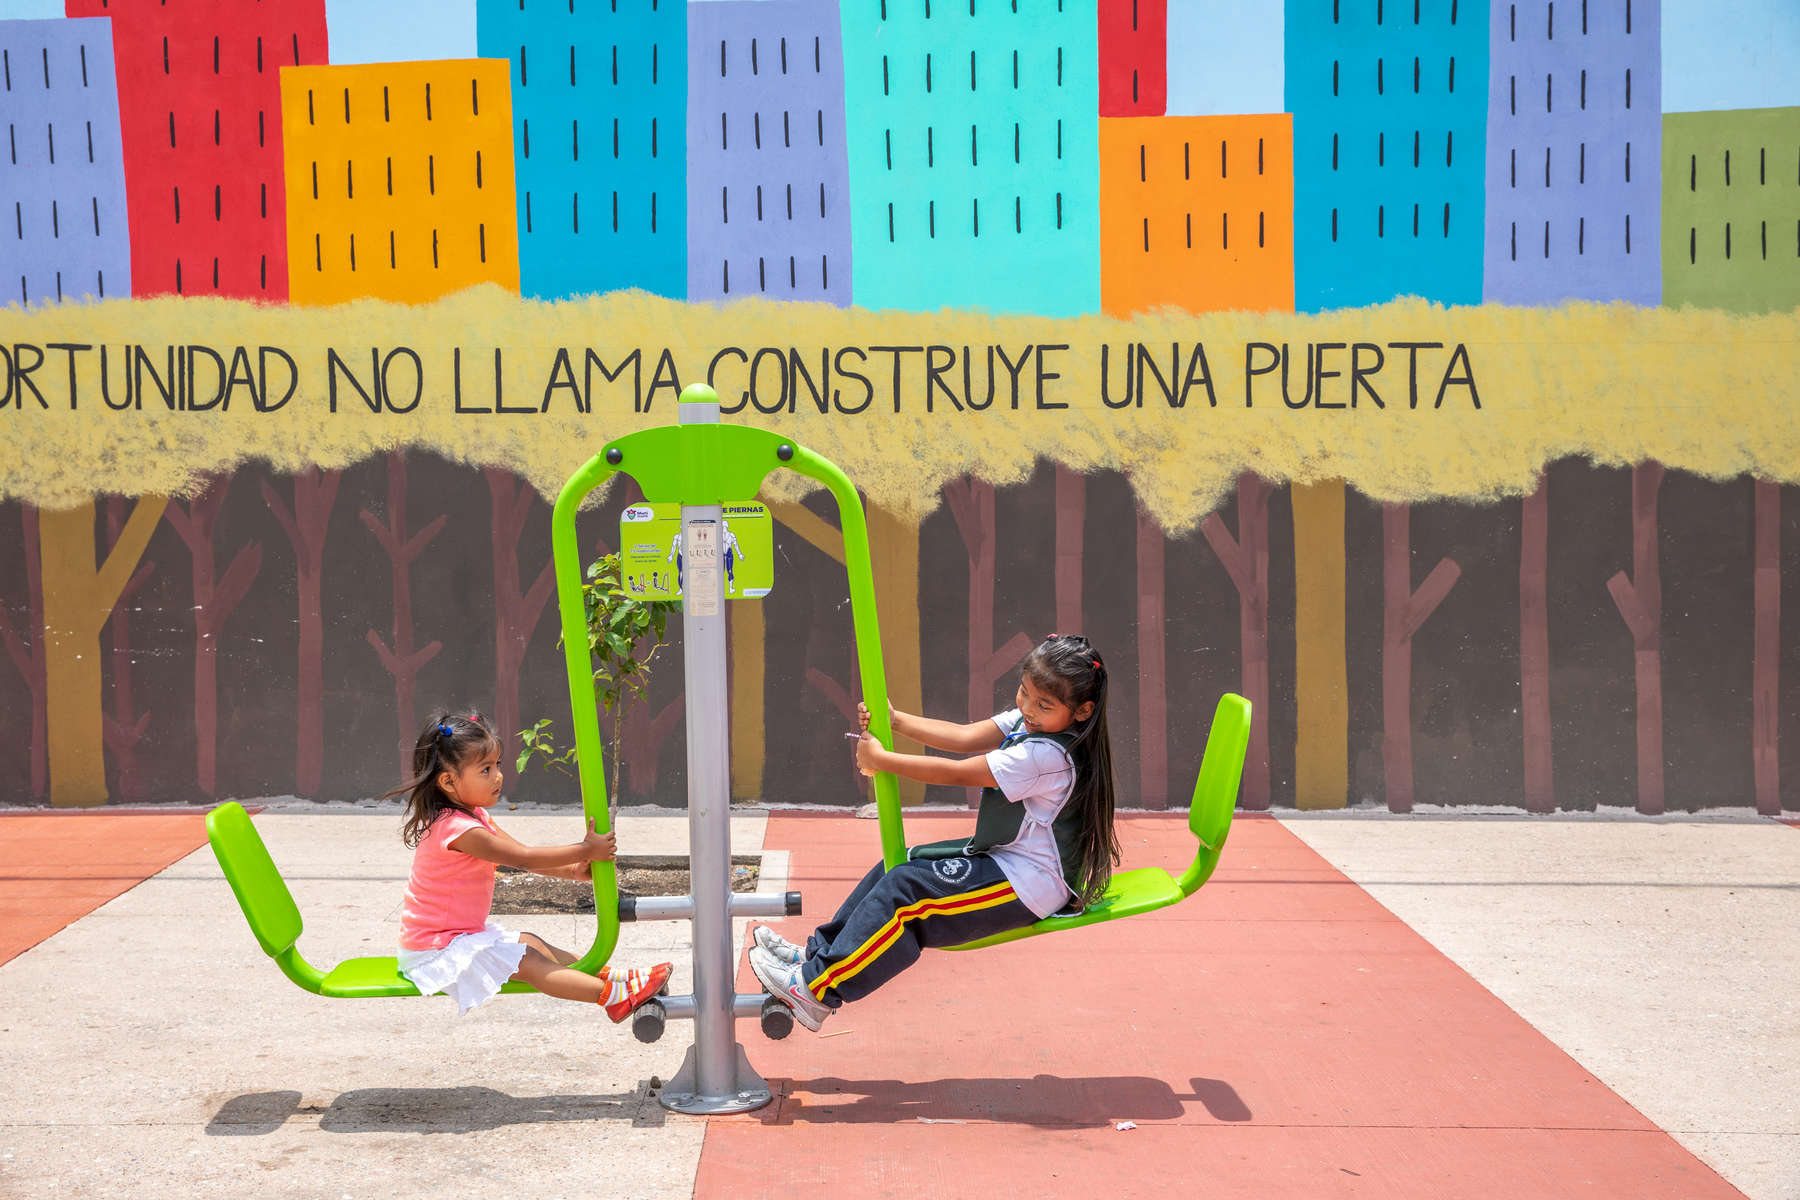 Alejandra (green shirt, 5) and her sister Sofia (pink shirt, 2) play in a park Mercy Corps built in their community. These infrastructure projects — playgrounds, exercise areas, community centers — are part of Mercy Corps' CONVIVIMOS program, which is working in Guatemala City's most violent areas to promote cohesion and help people reclaim their communities. The spaces offer families important neutral territory in places otherwise driven by territory-based gang violence, and offer them the opportunity to experience and feel rooted in their communities in a more positive way.